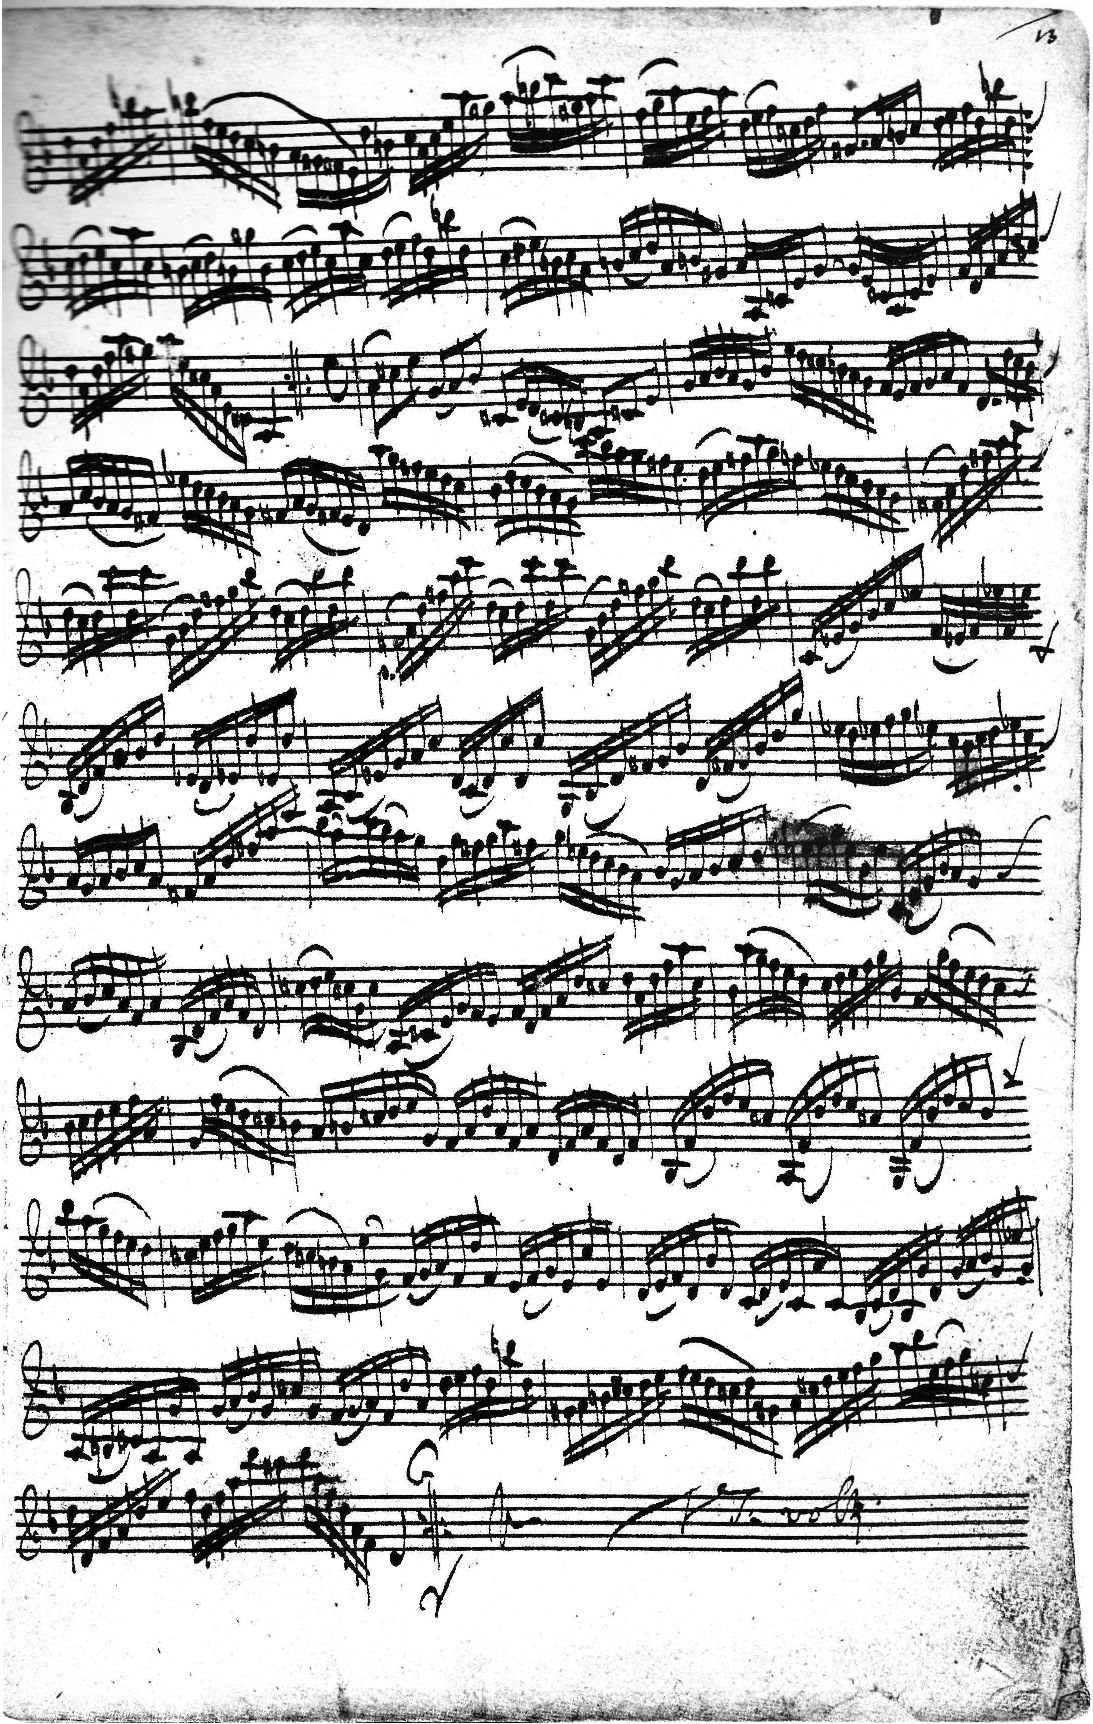 bach gigue in d minor